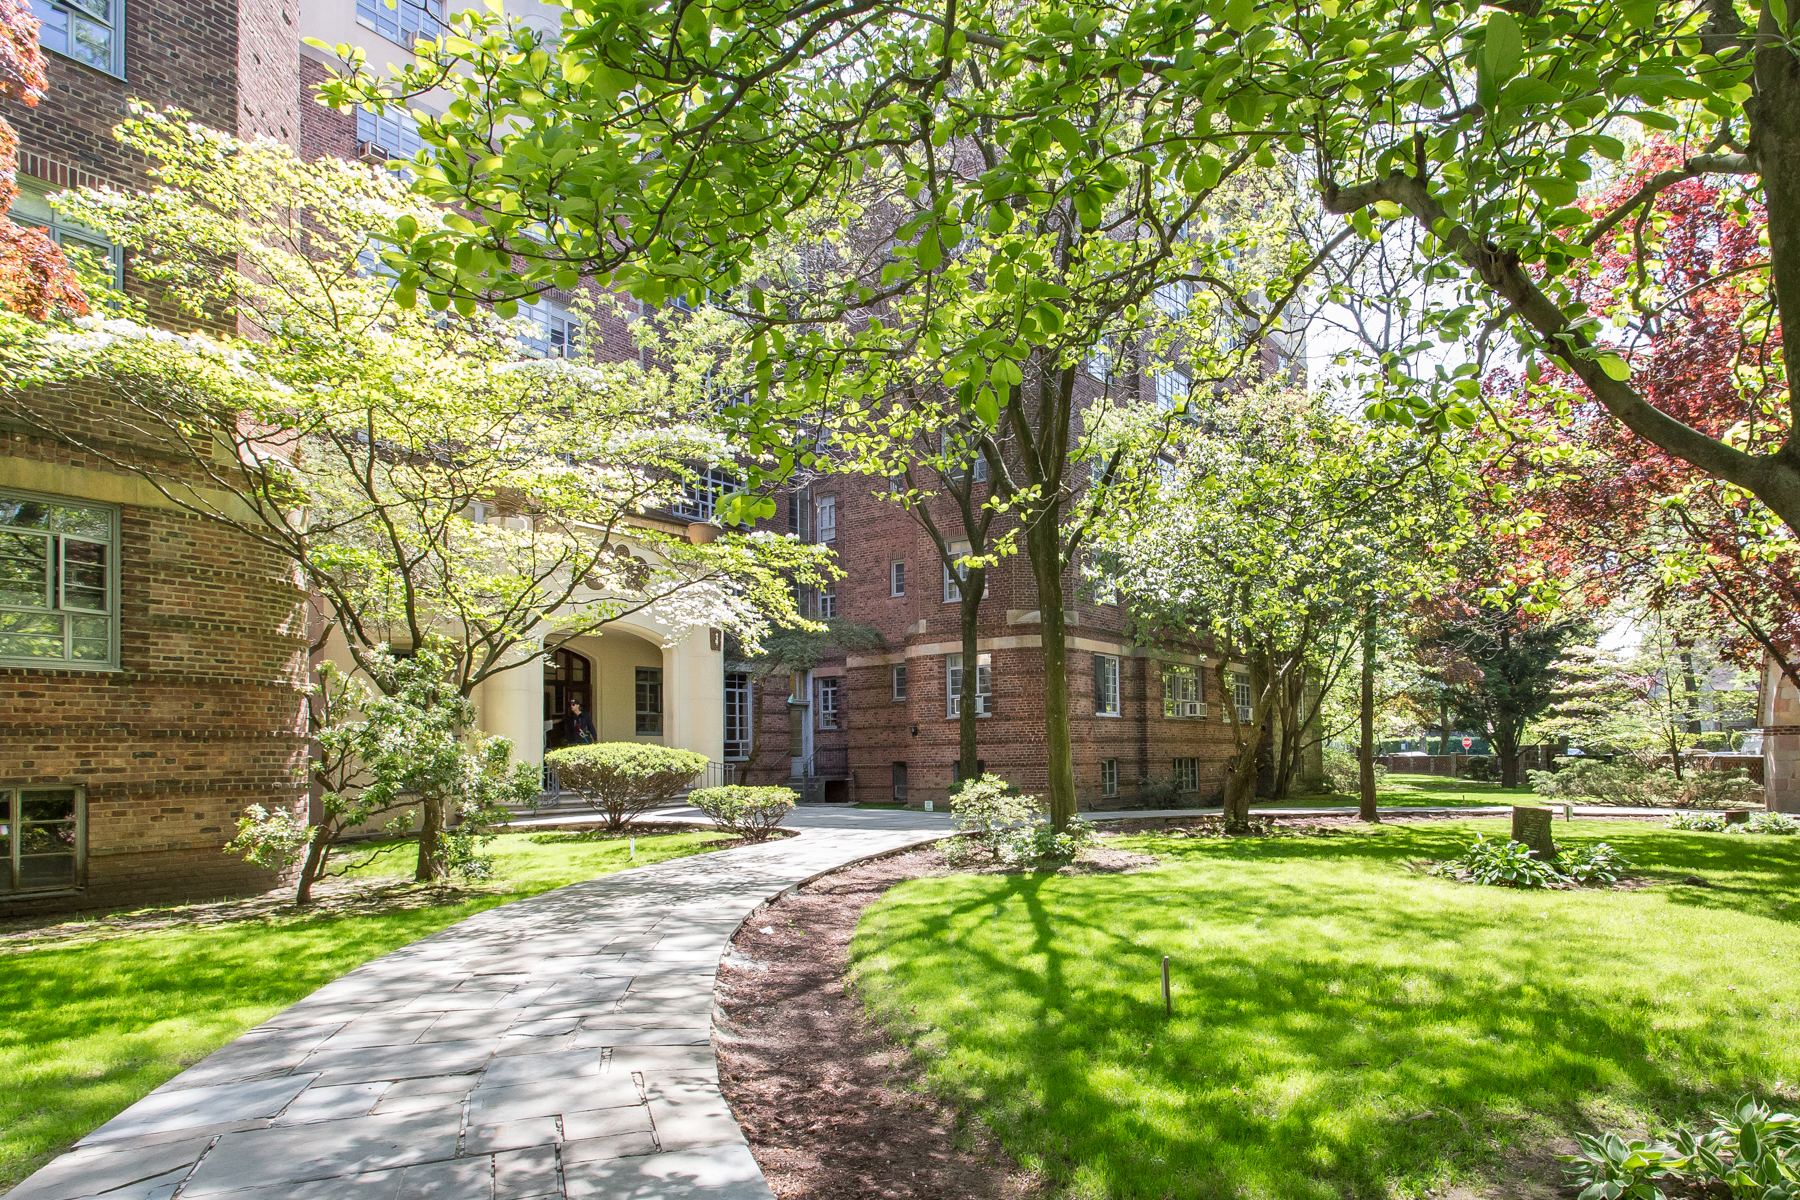 """Apartment for Rent at """"2 BEDROOM, 2 BATH IN FHG"""" Forest Hills, New York 11375 United States"""